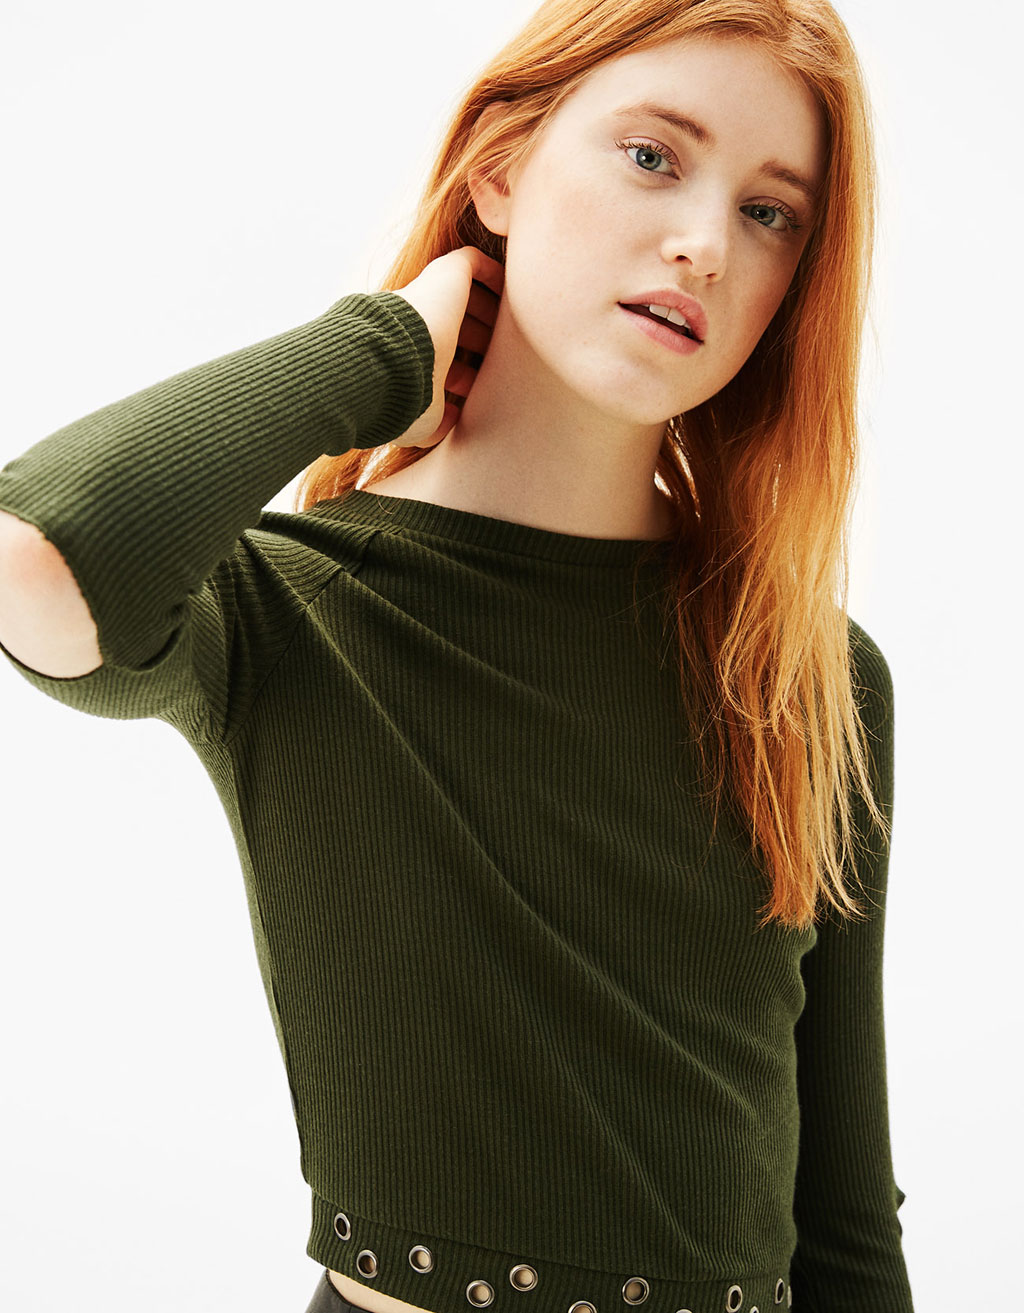 Cropped sweatshirt with buttonholes on sleeves